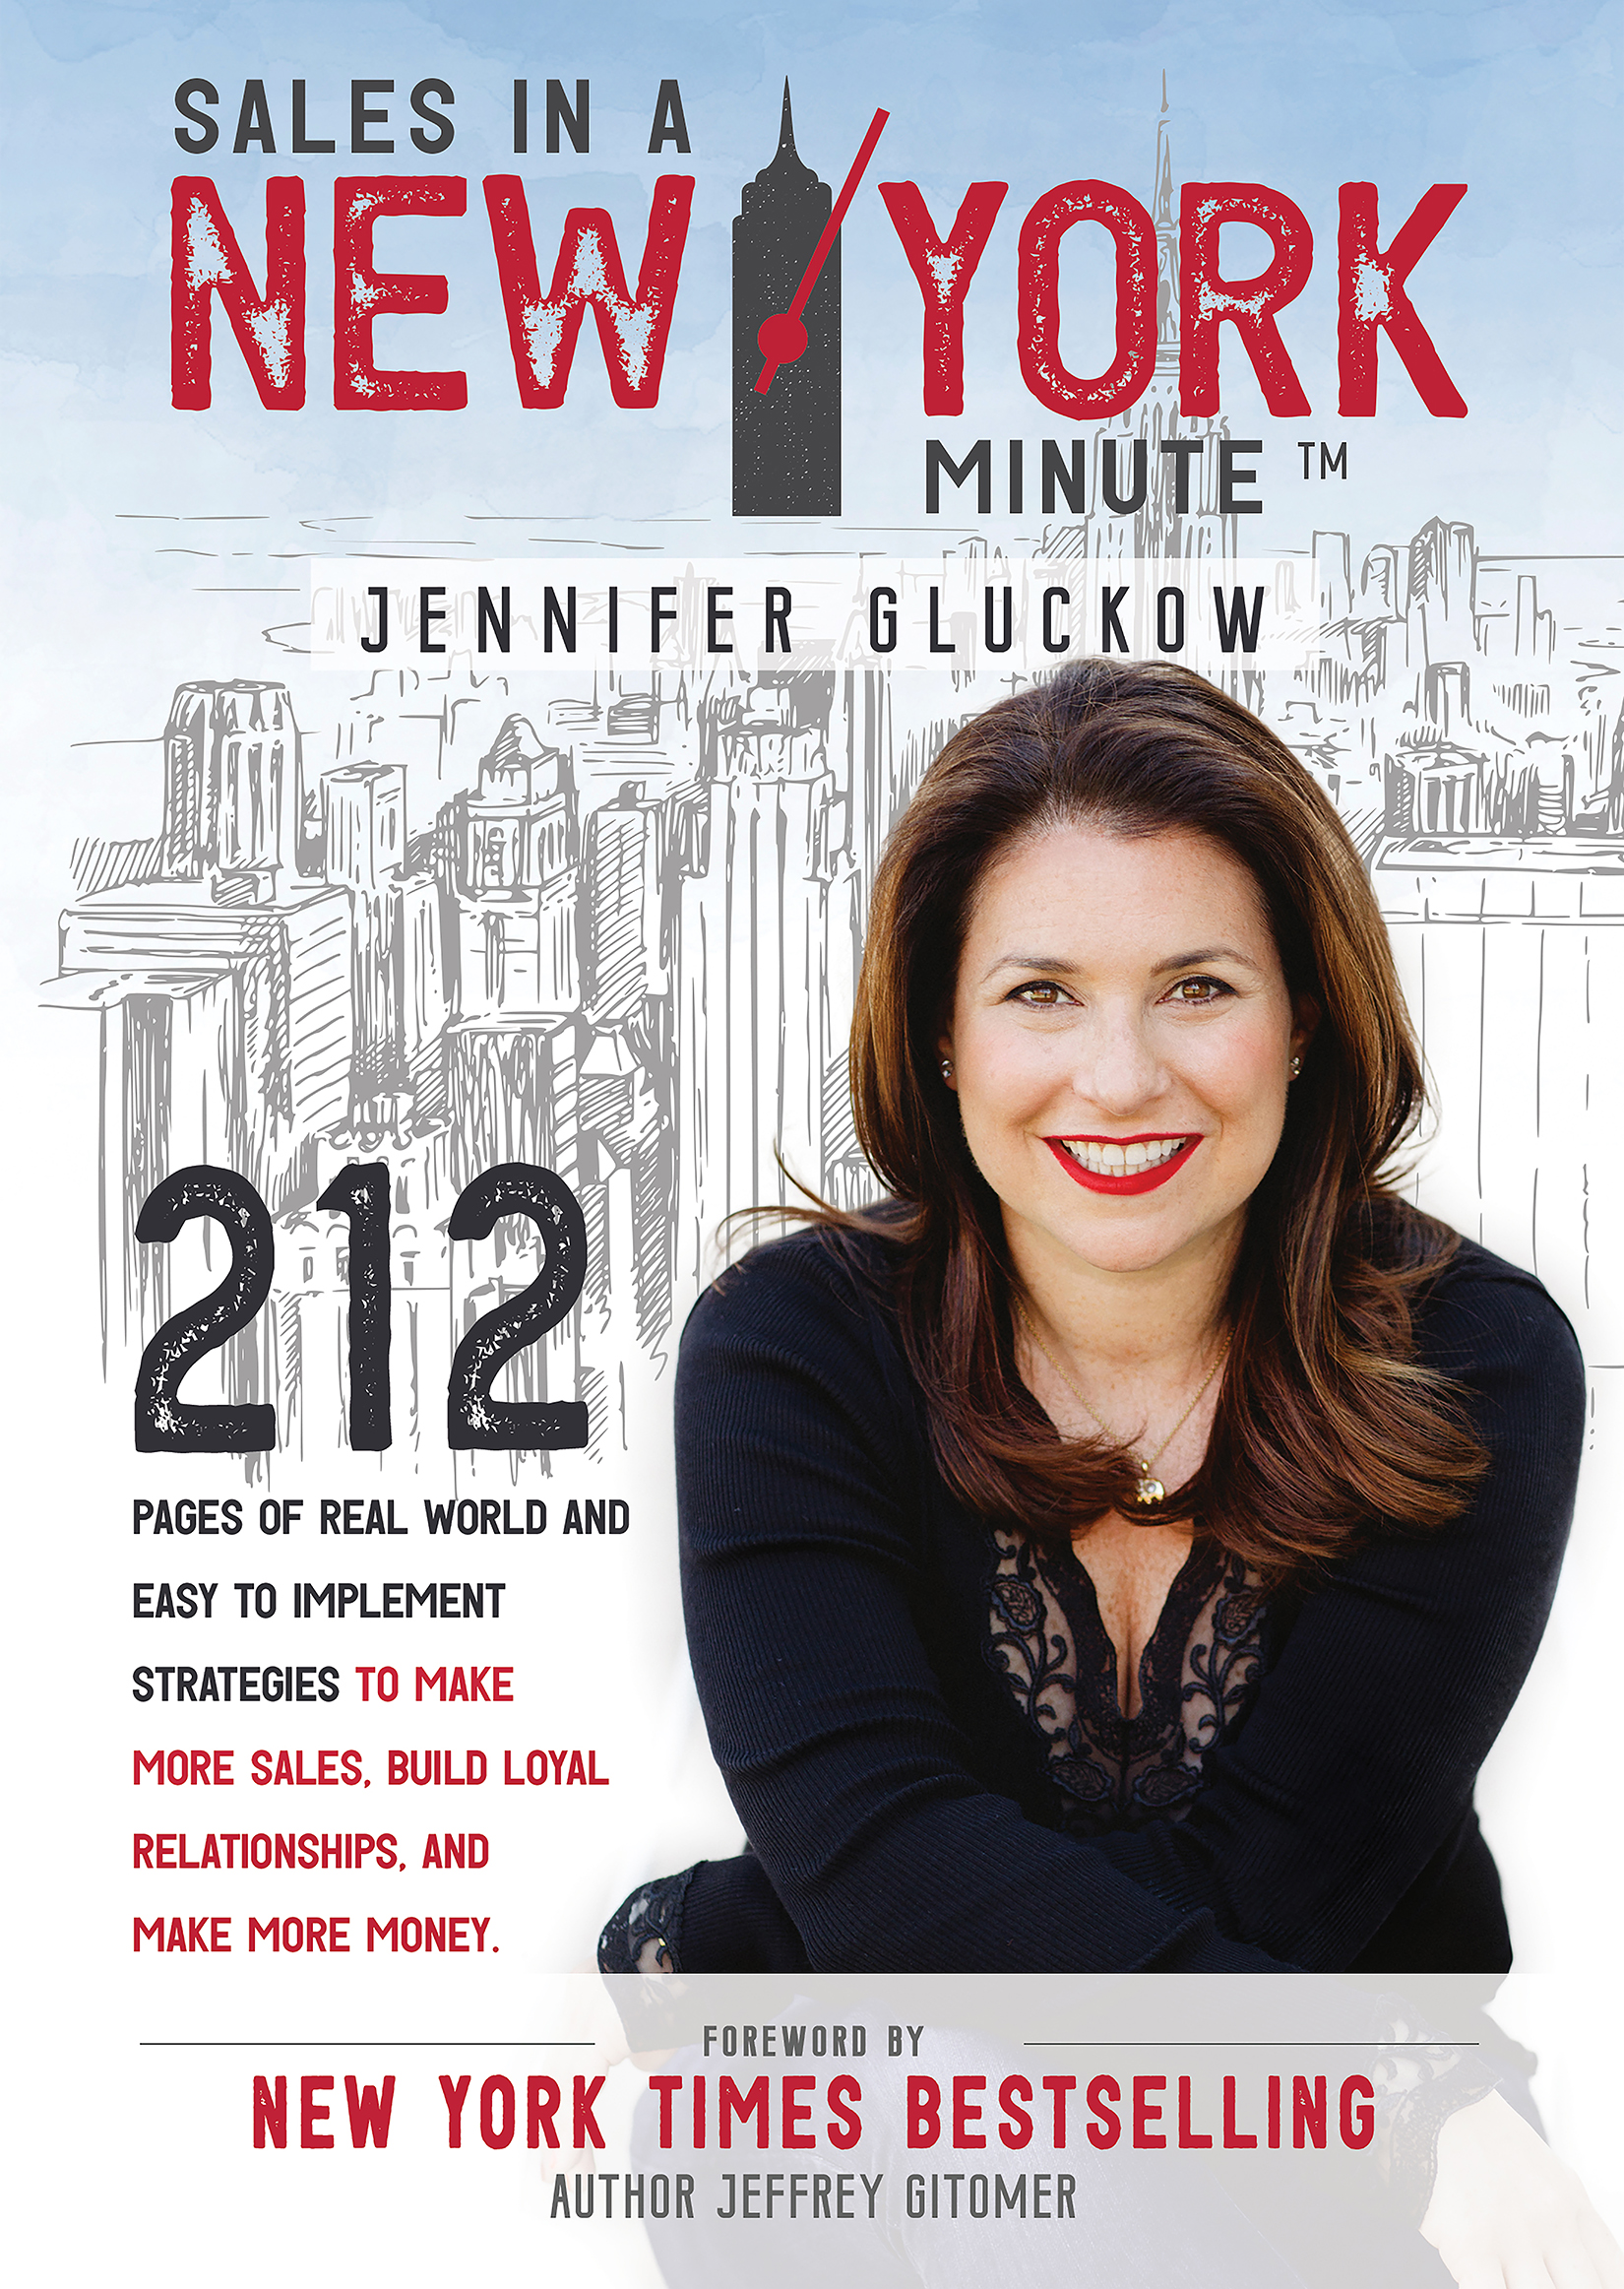 Sales in a New York Minute - By Jennifer Gluckow